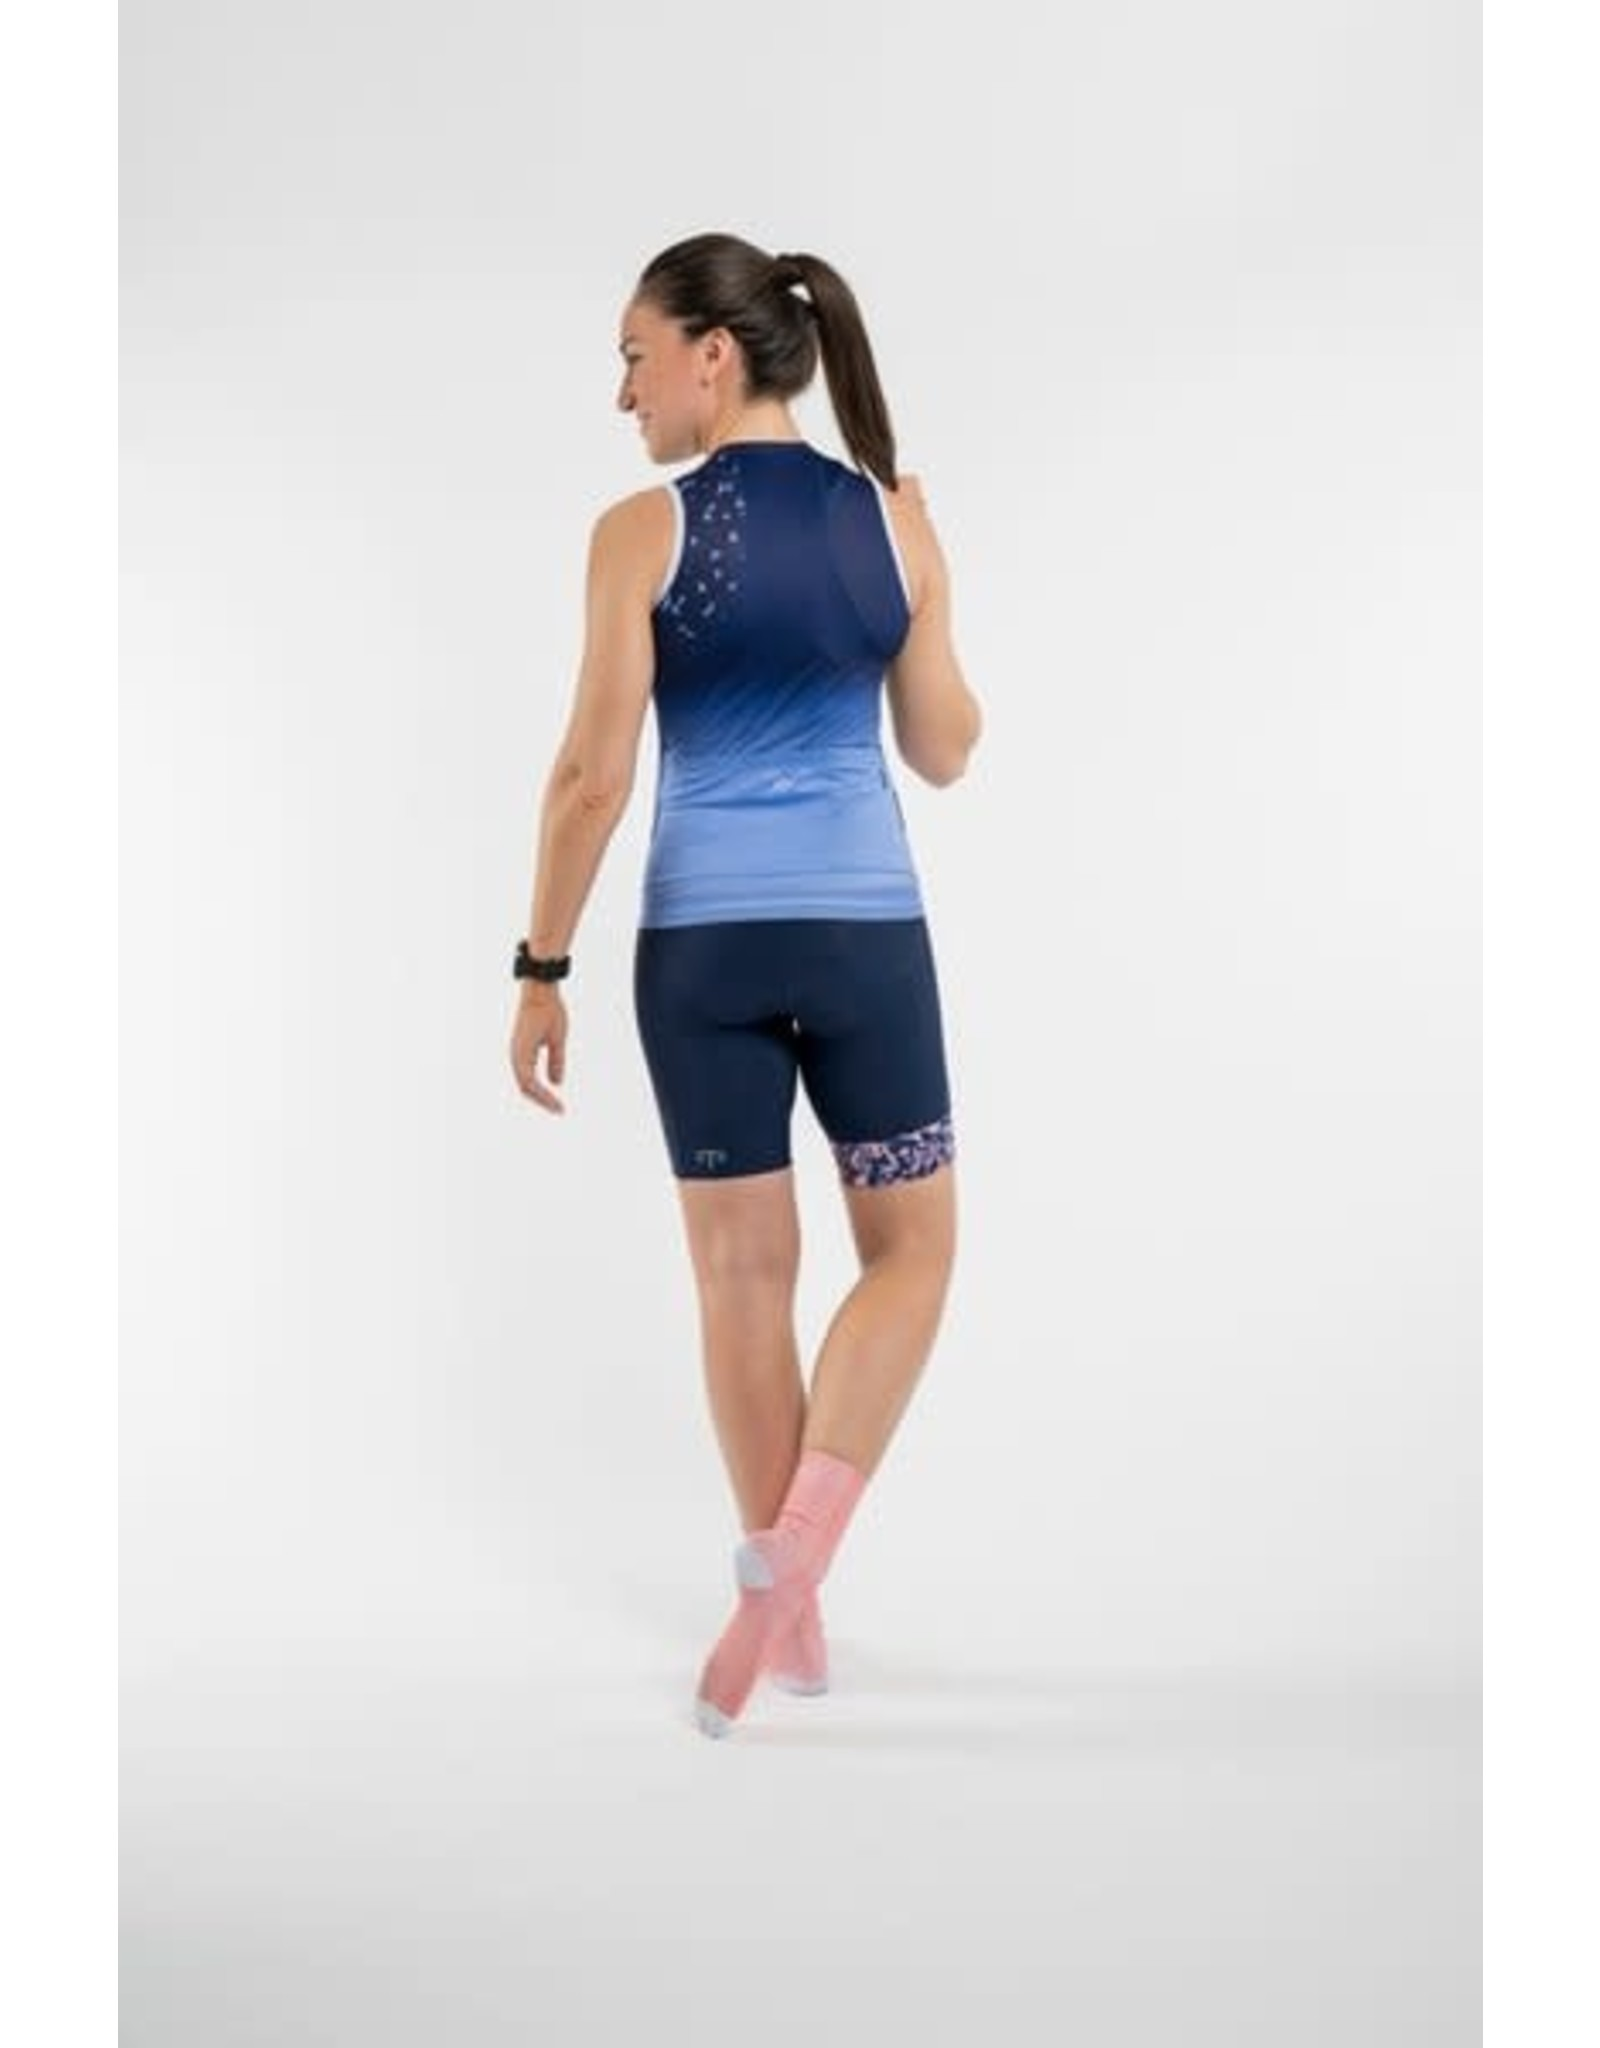 Peppermint '21, PEPPERMINT, Signature Sleeveless Jersey, Assorted Colours